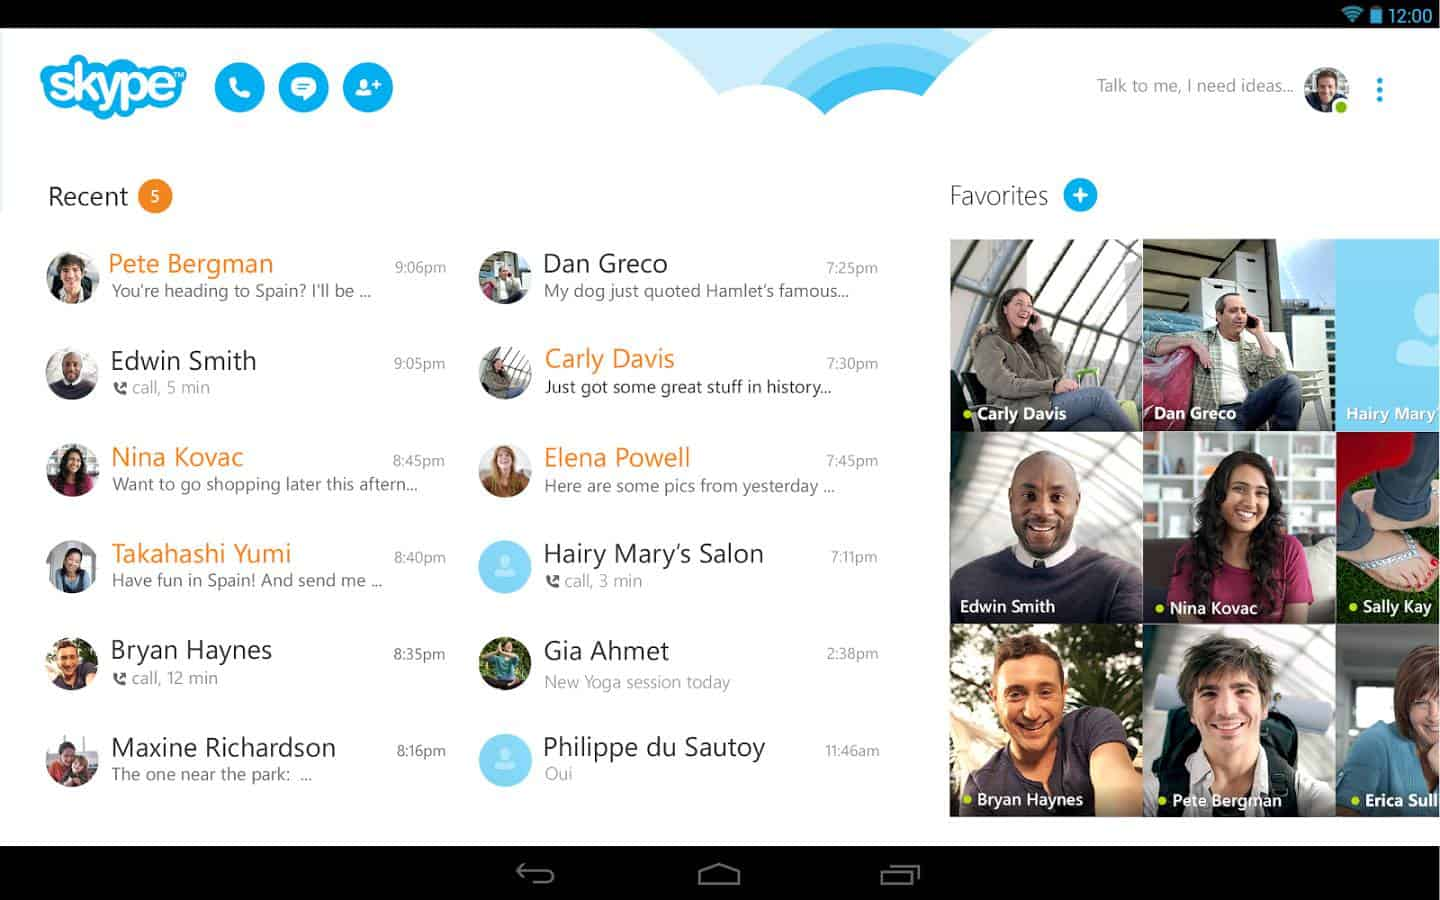 how to add someone on skype android